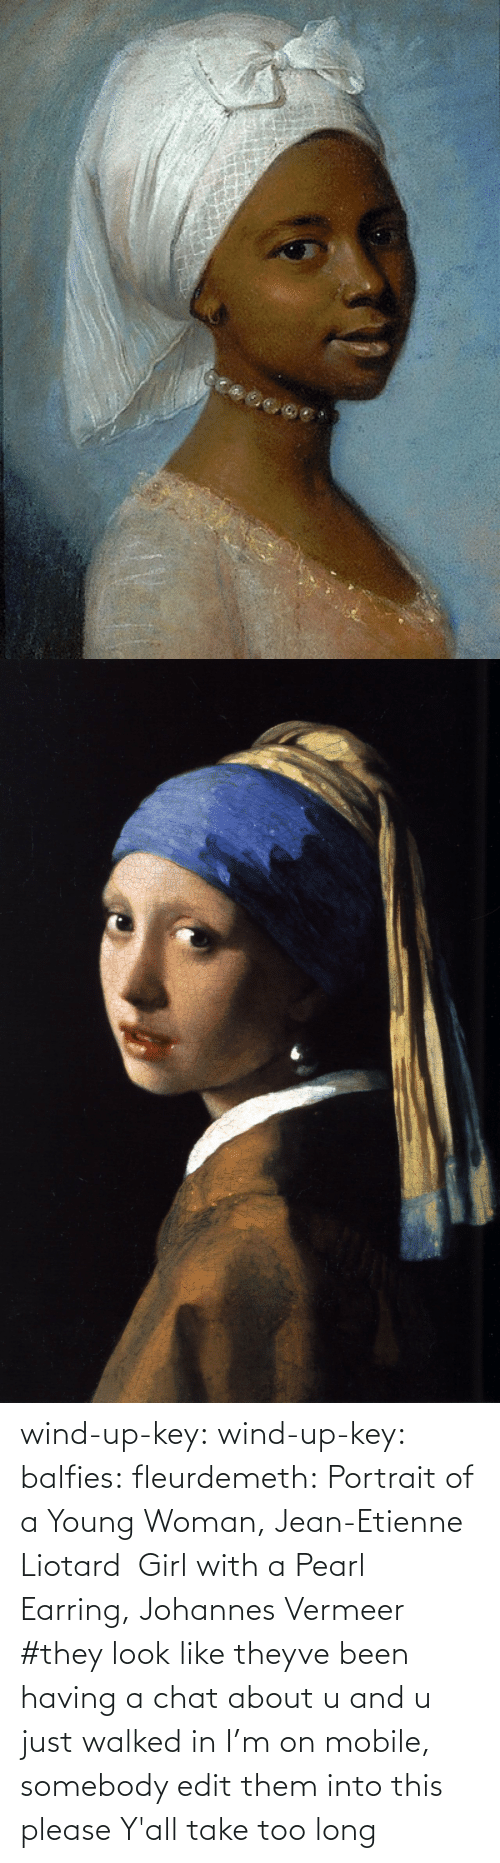 wind: wind-up-key: wind-up-key:   balfies:  fleurdemeth:  Portrait of a Young Woman, Jean-Etienne Liotard Girl with a Pearl Earring, Johannes Vermeer  #they look like theyve been having a chat about u and u just walked in   I'm on mobile, somebody edit them into this please   Y'all take too long